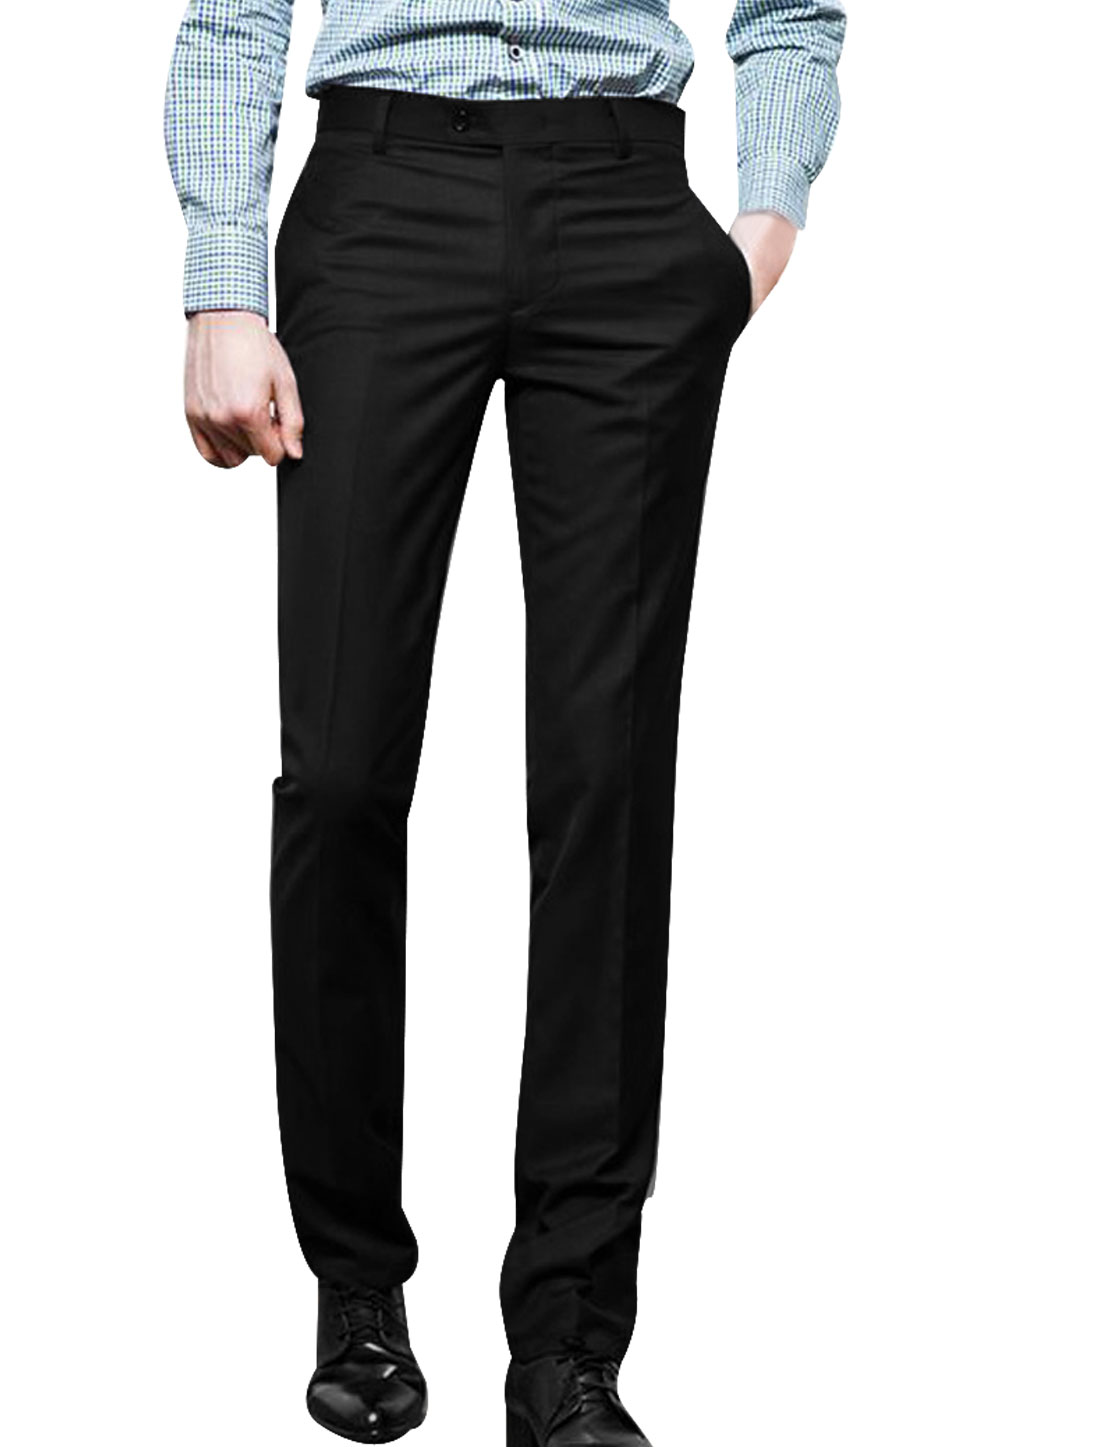 Mens Black Natural Rise Concealed Zipper Side Fashion Office Pants W34